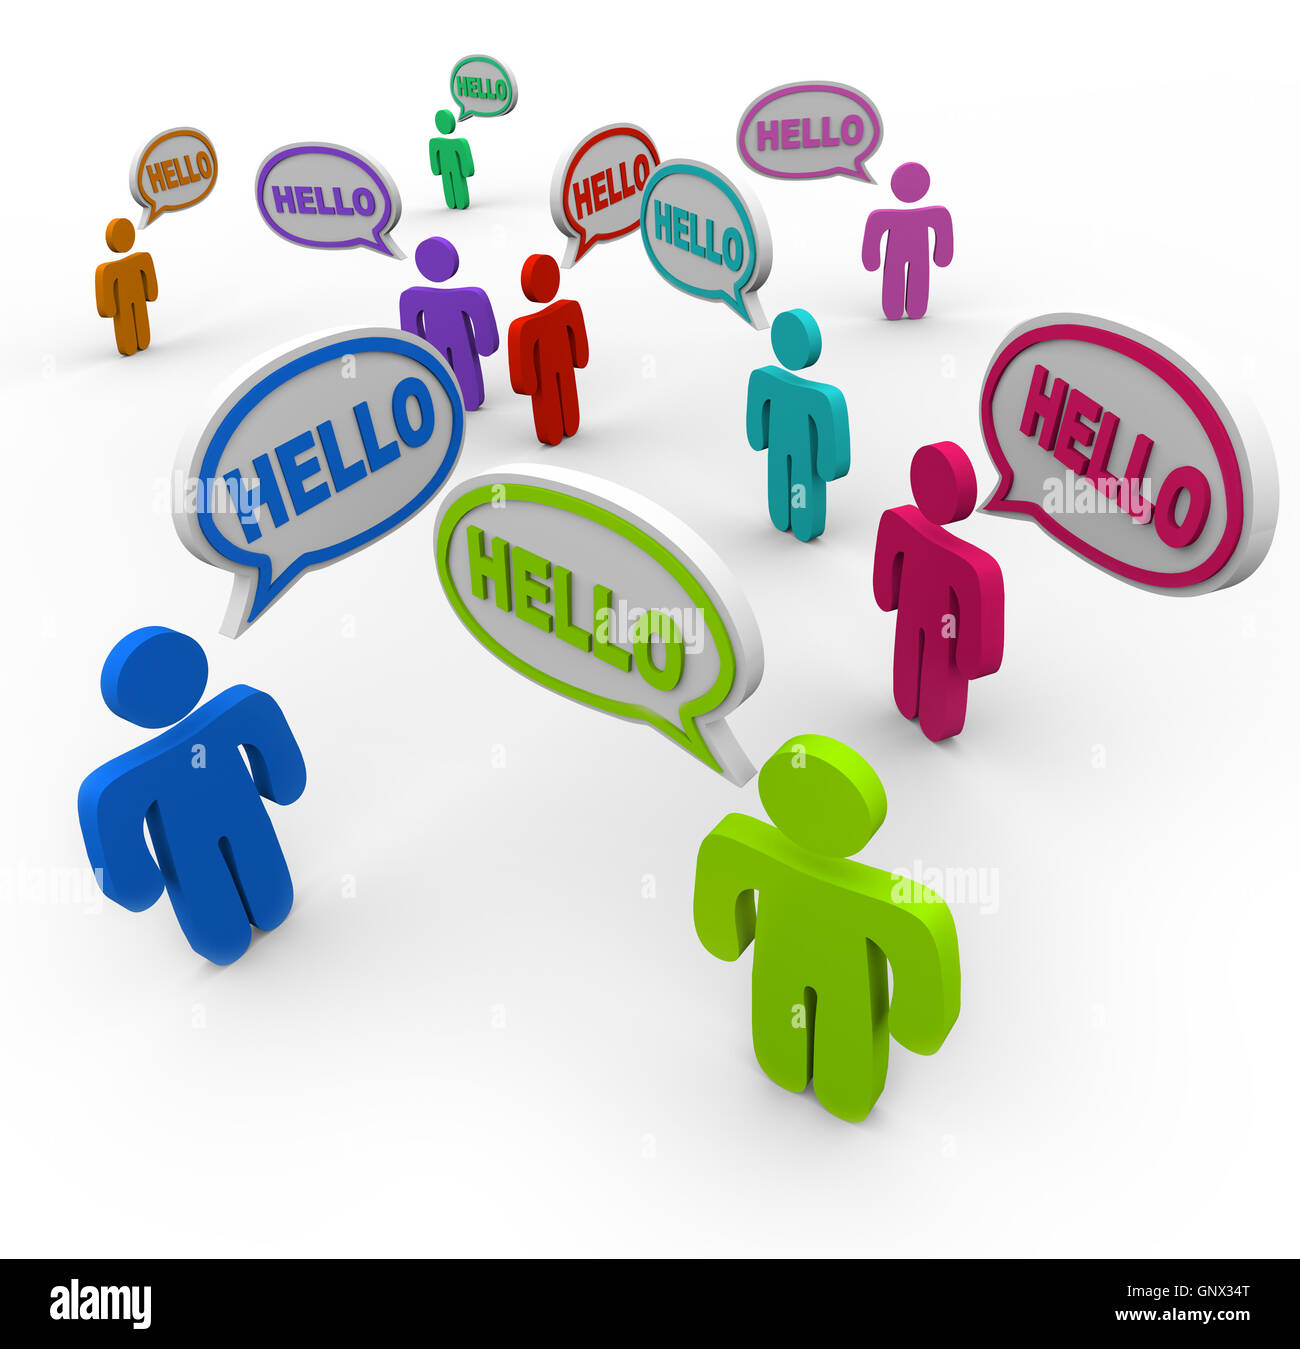 Diverse People Saying Hello Greeting In Speech Bubbles Stock Photo